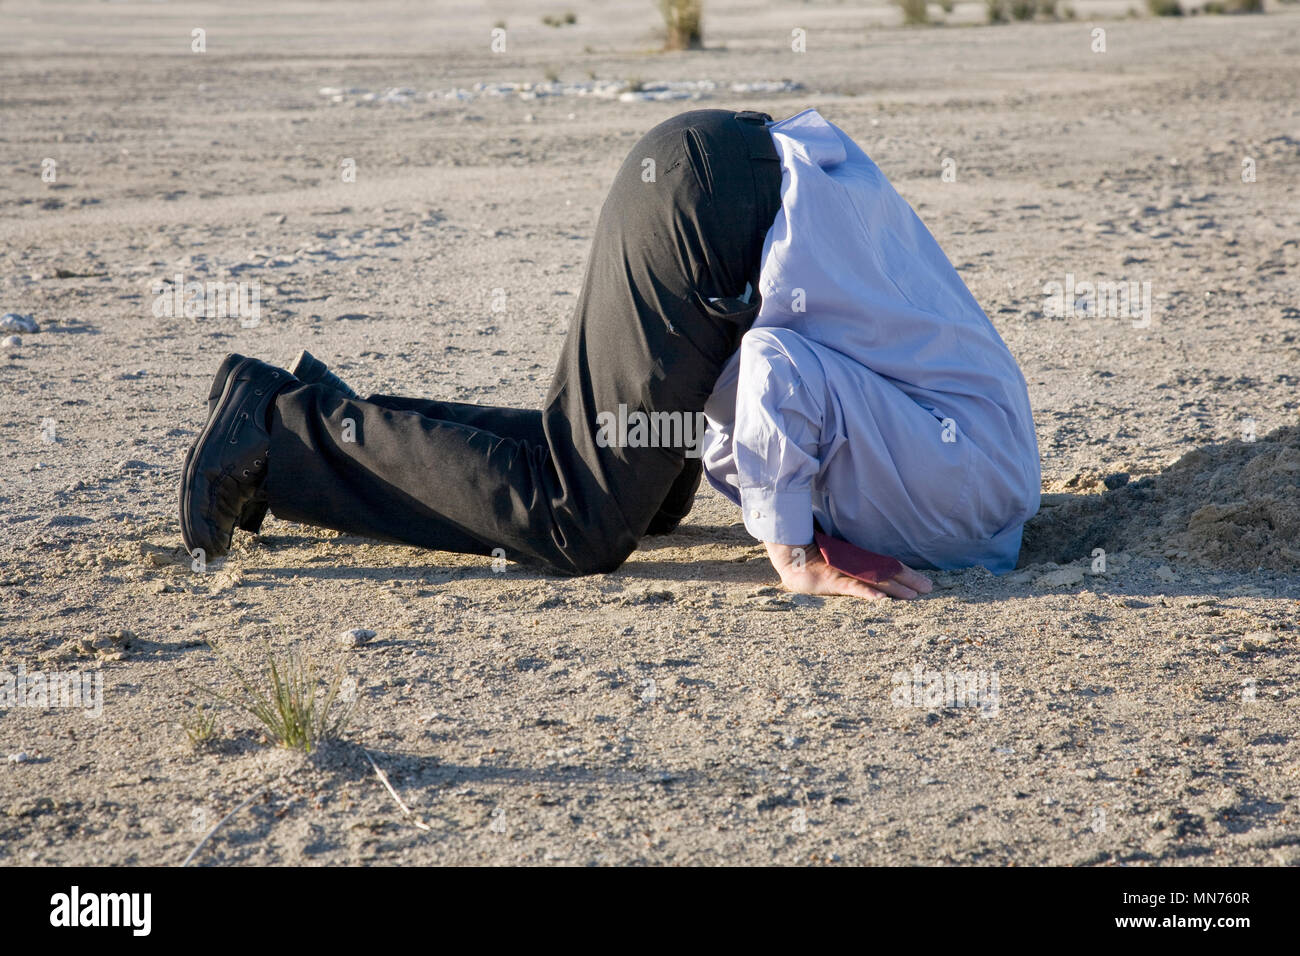 A professional with his head buried in the sand. Stock Photo